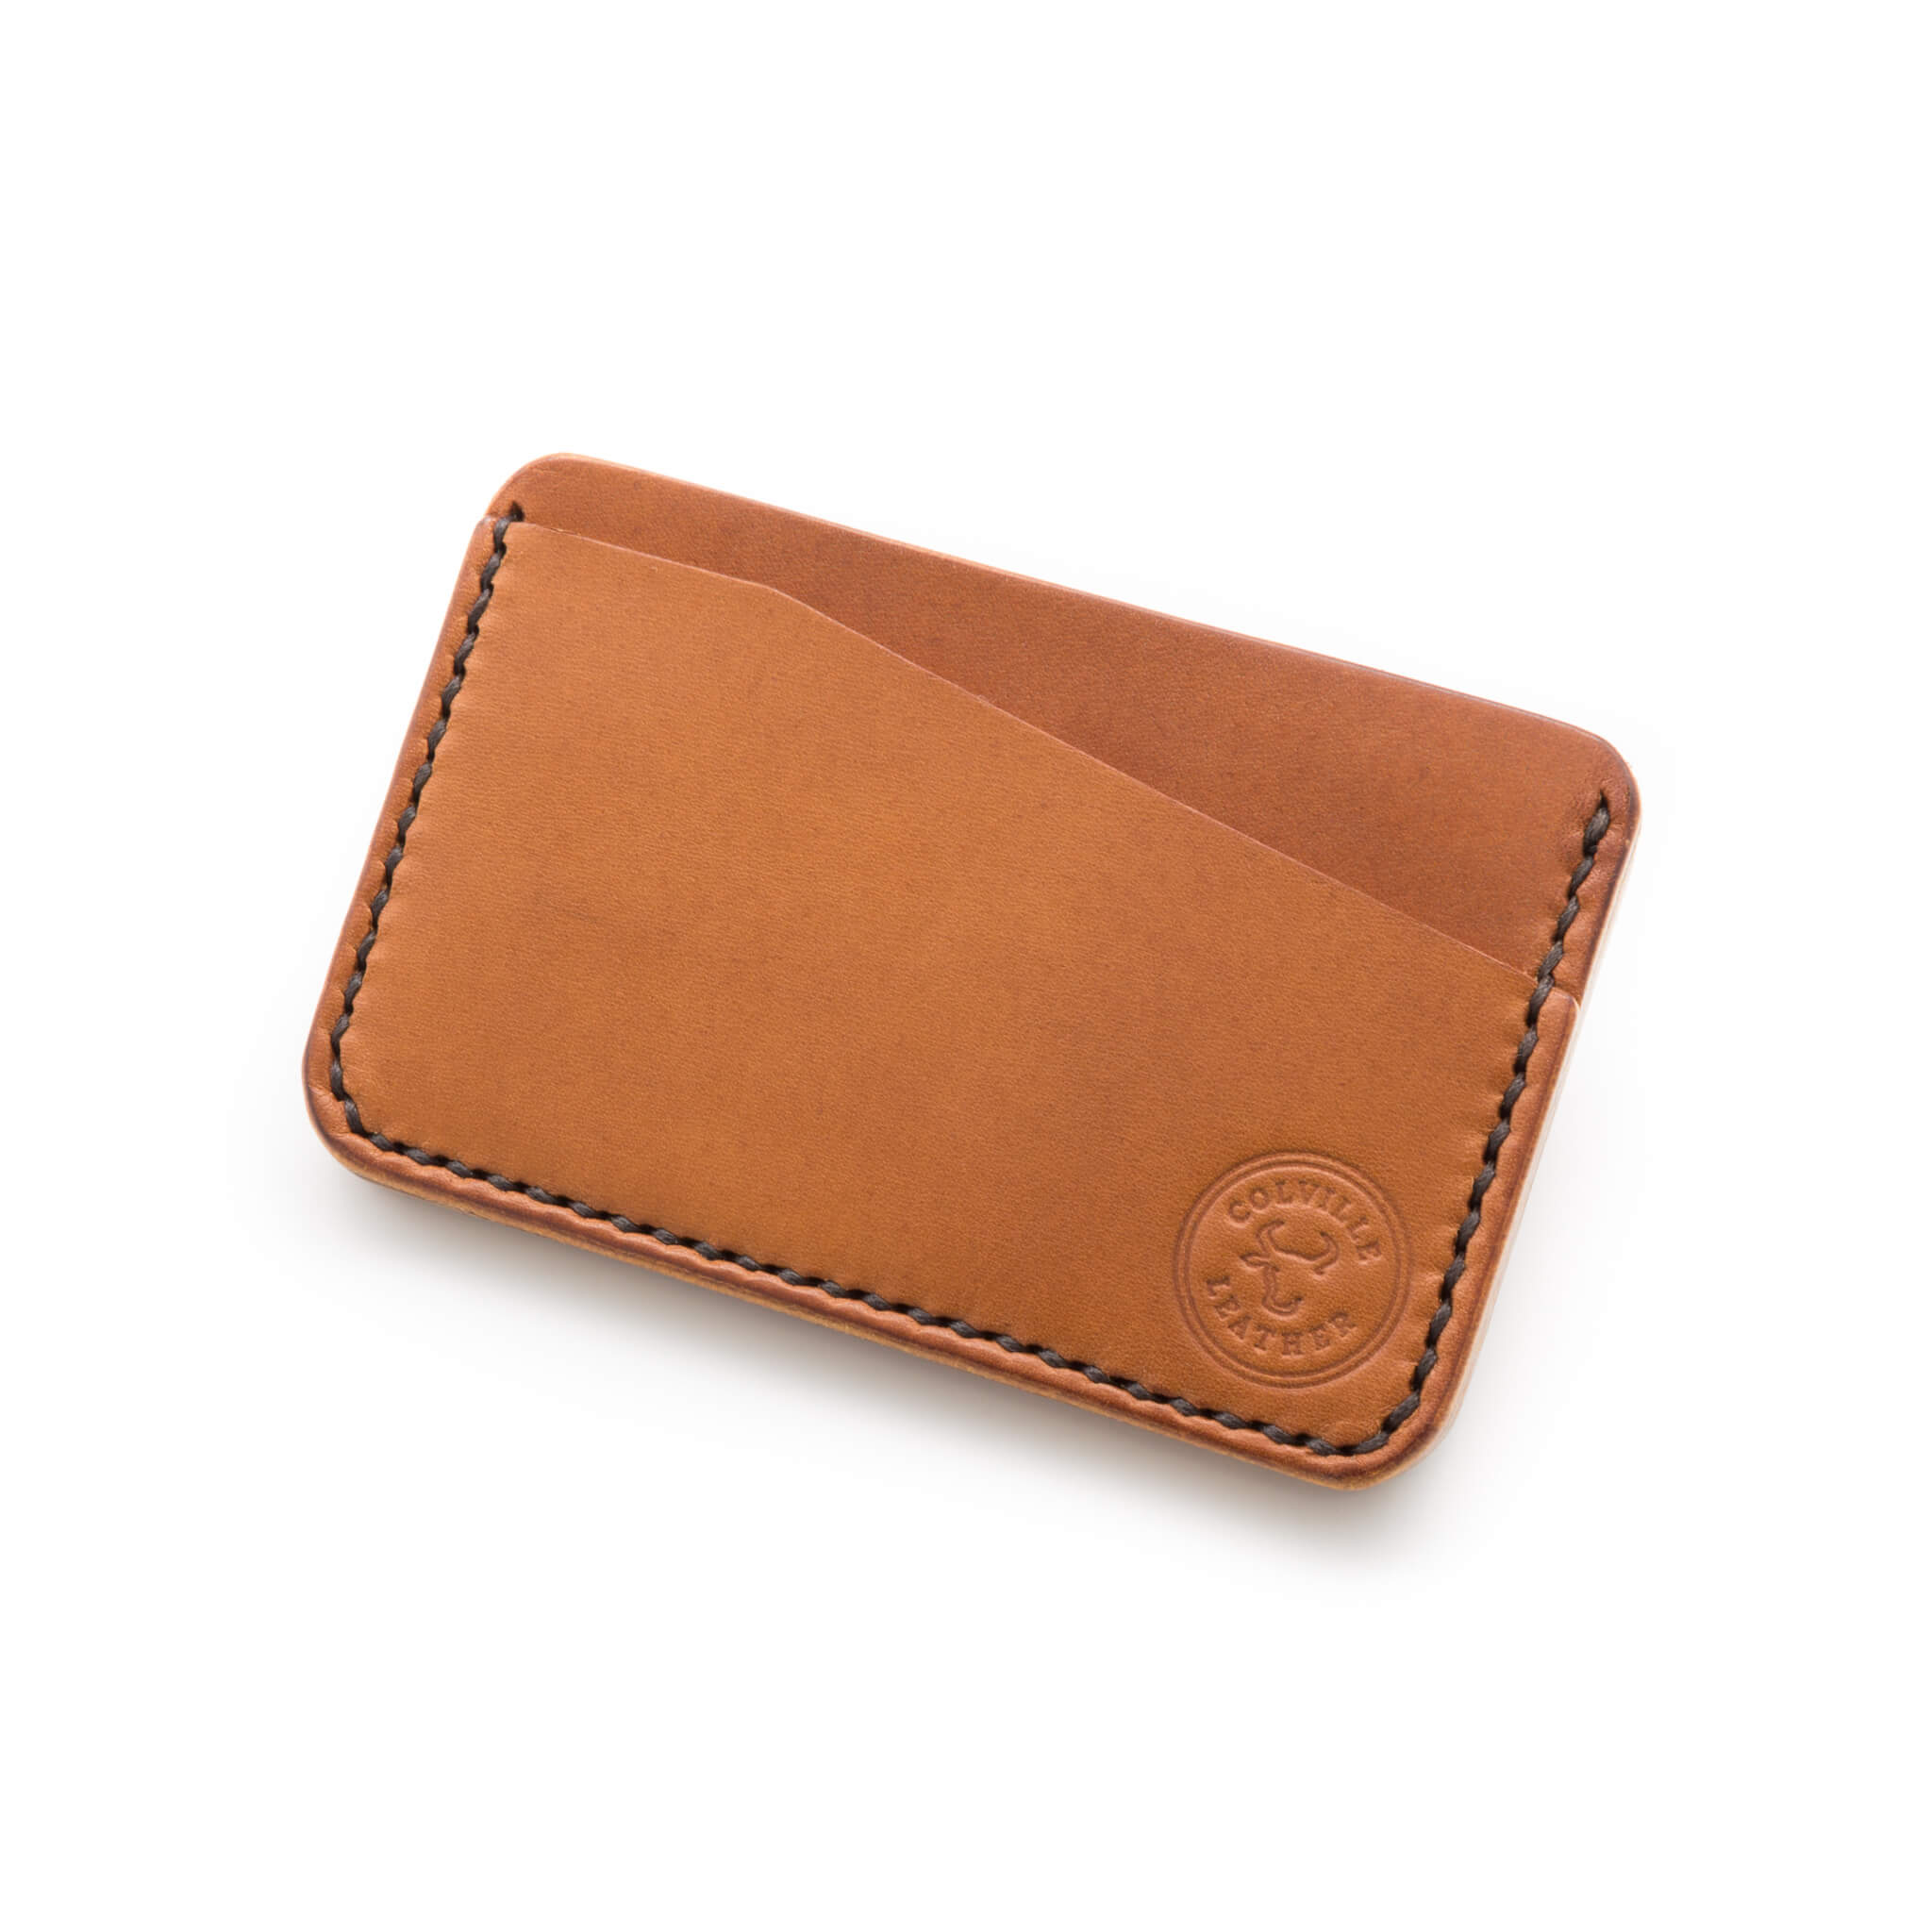 Handmade leather wallet in Tan coloured leather